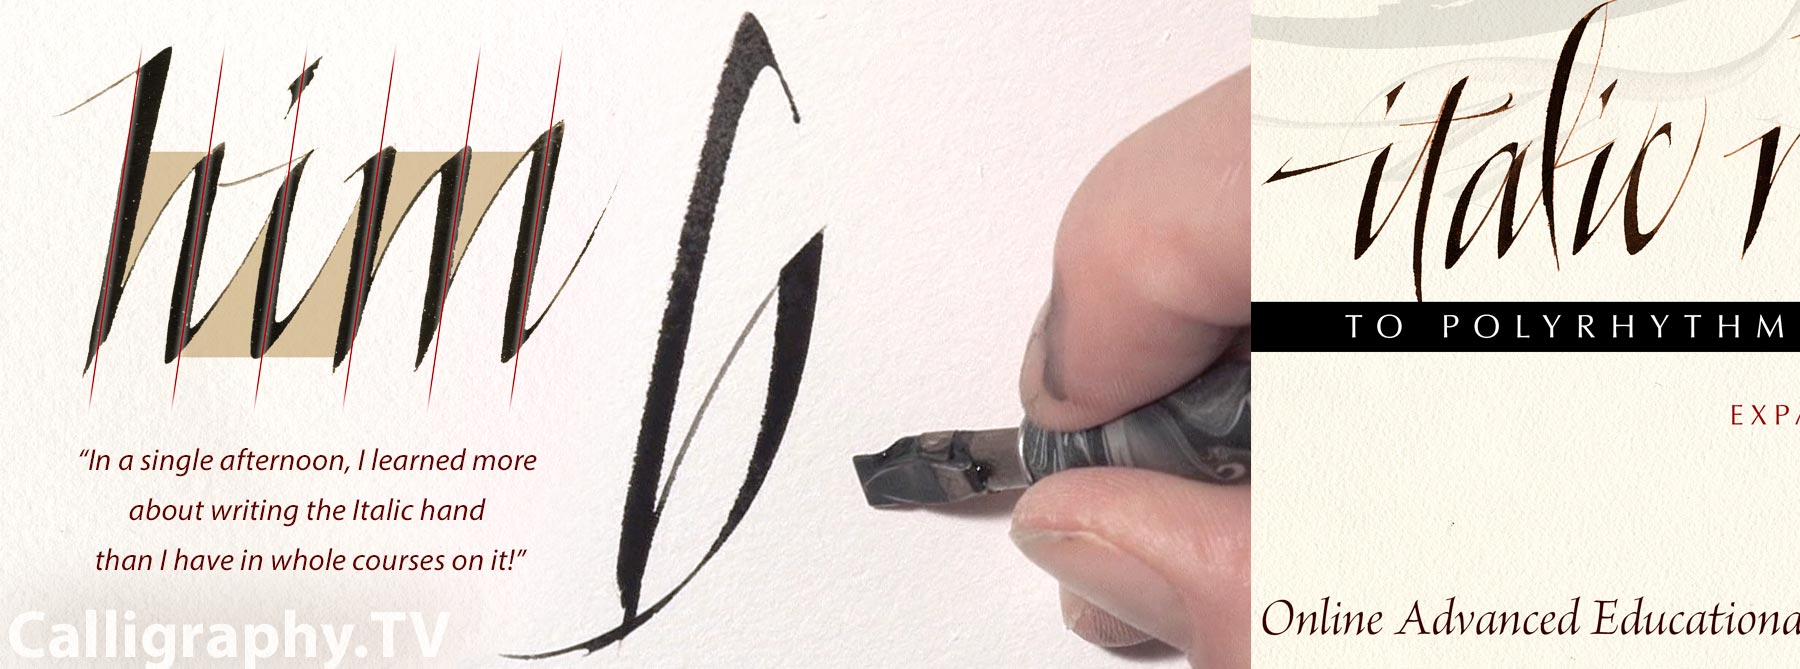 Calligraphy Online Online Calligraphy Masterclass